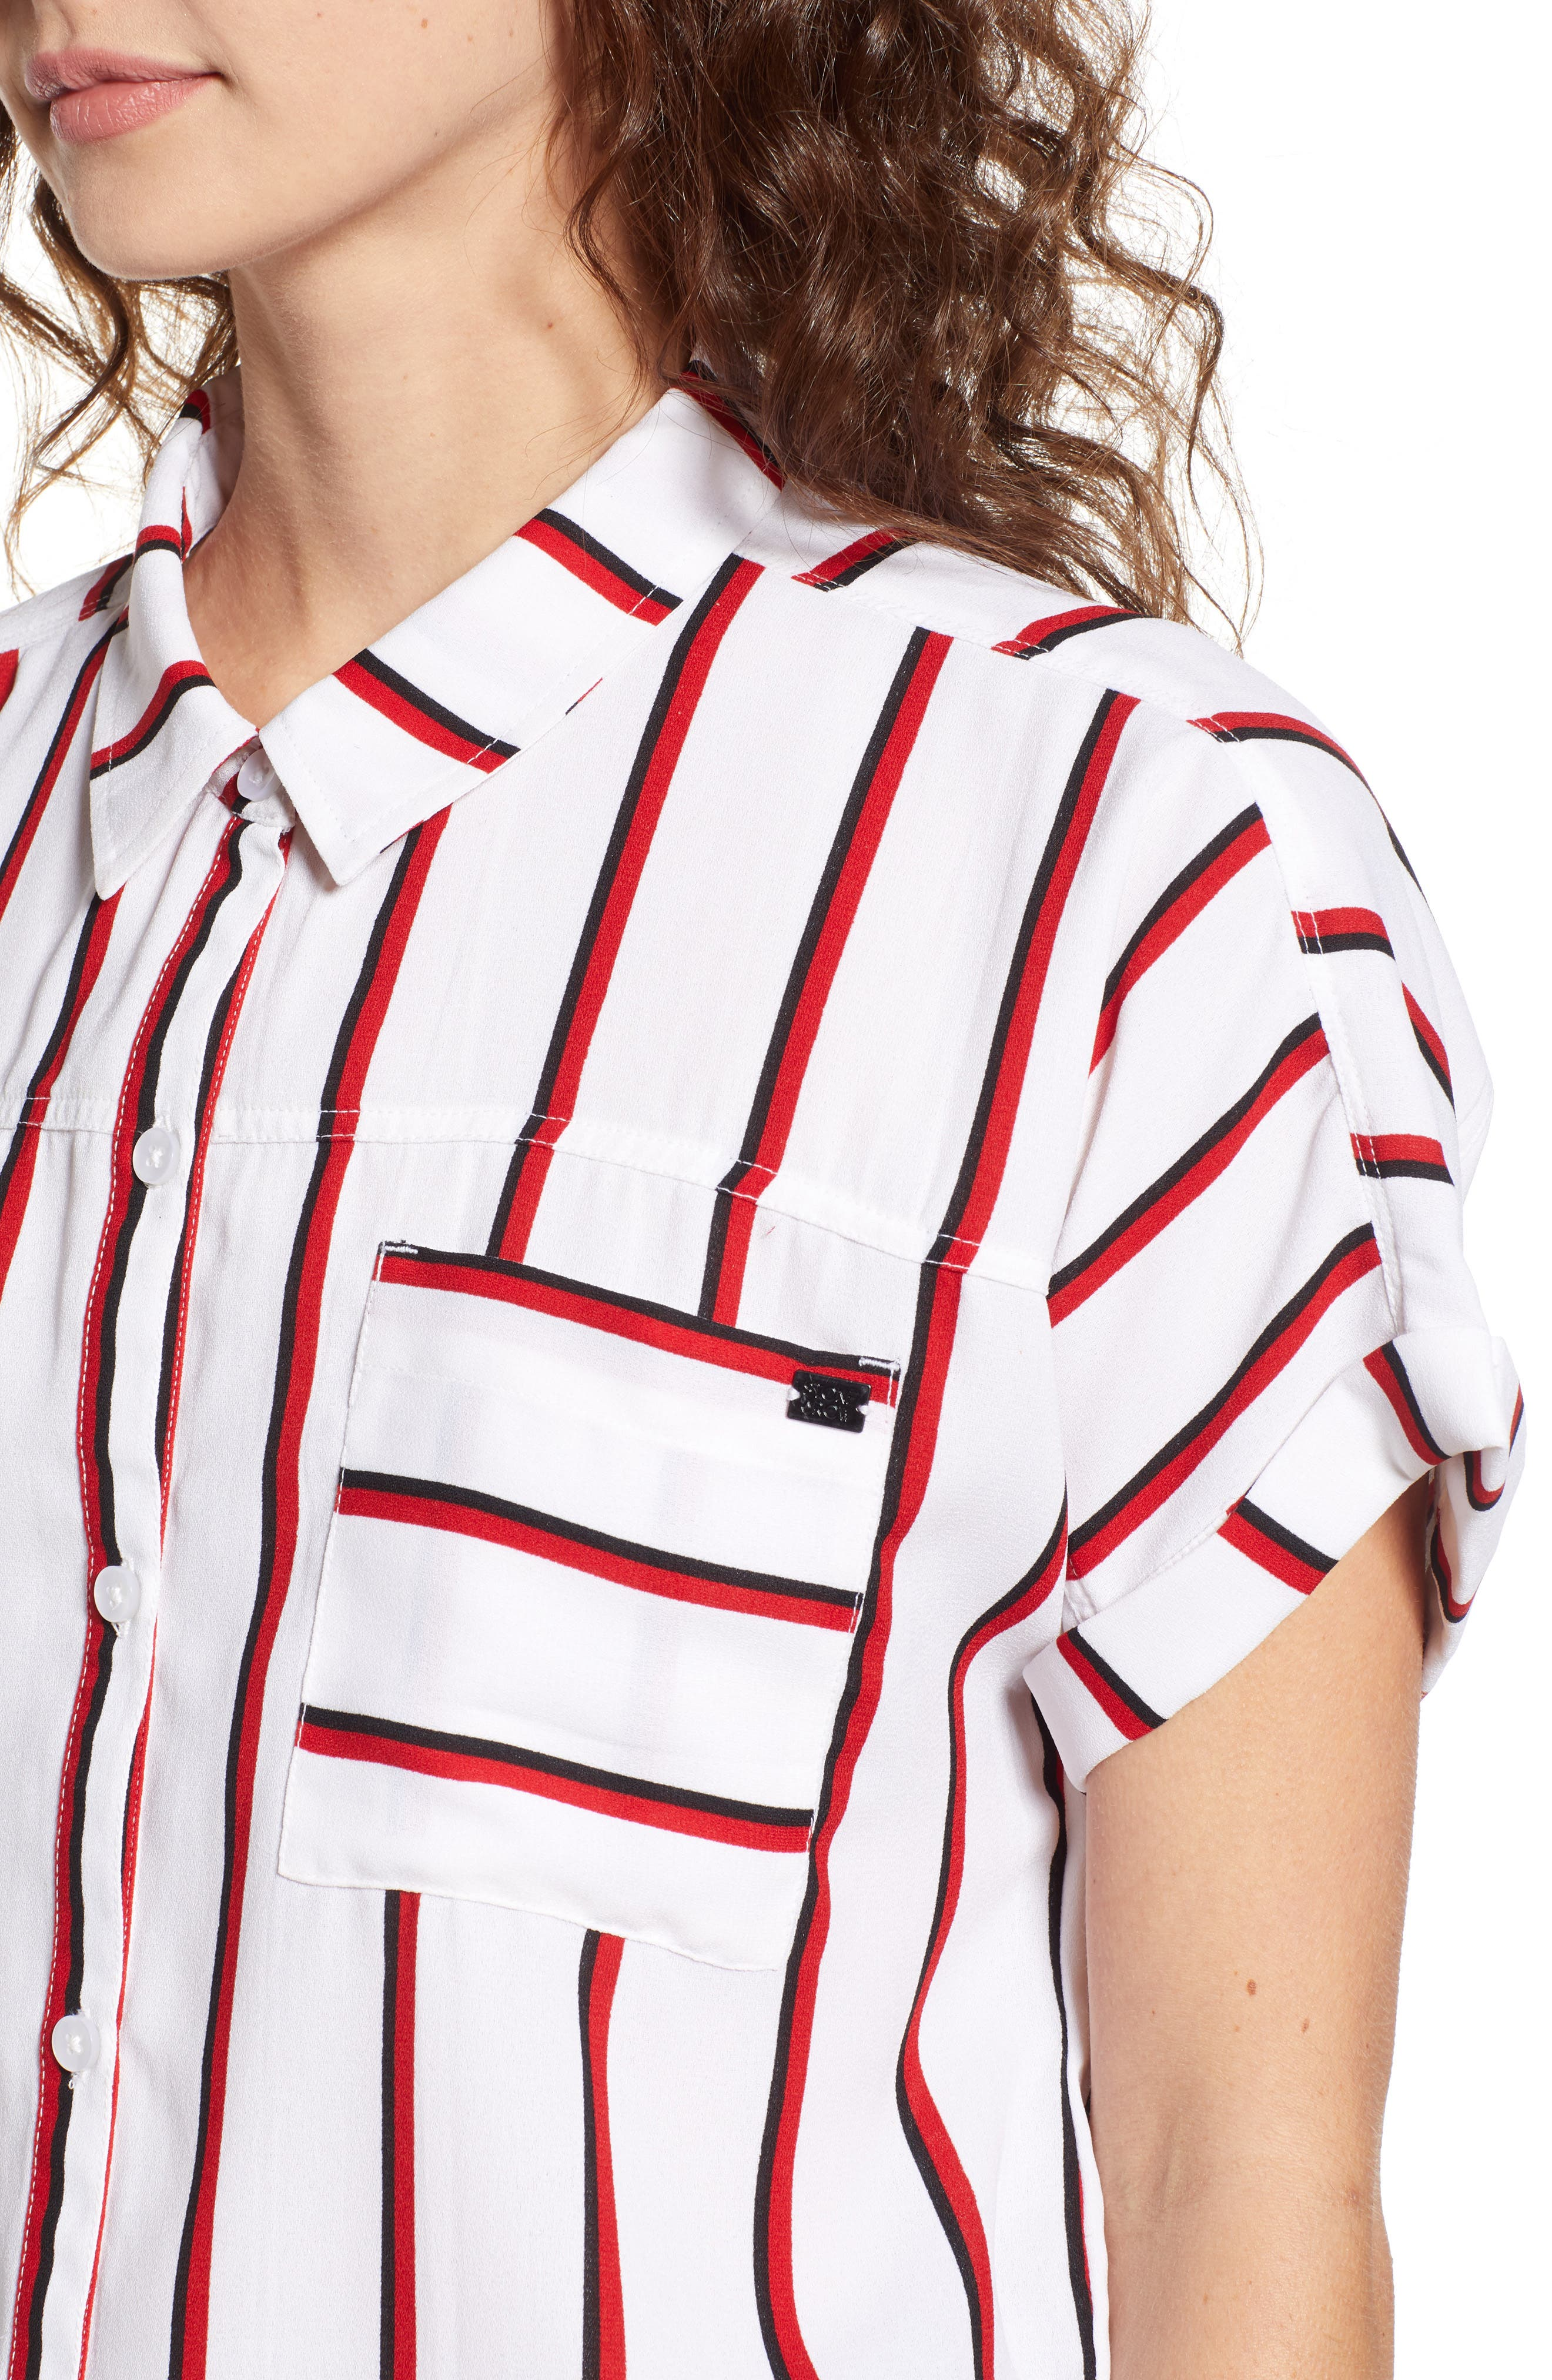 Counting Moons Stripe Top,                             Alternate thumbnail 4, color,                             Chili Red